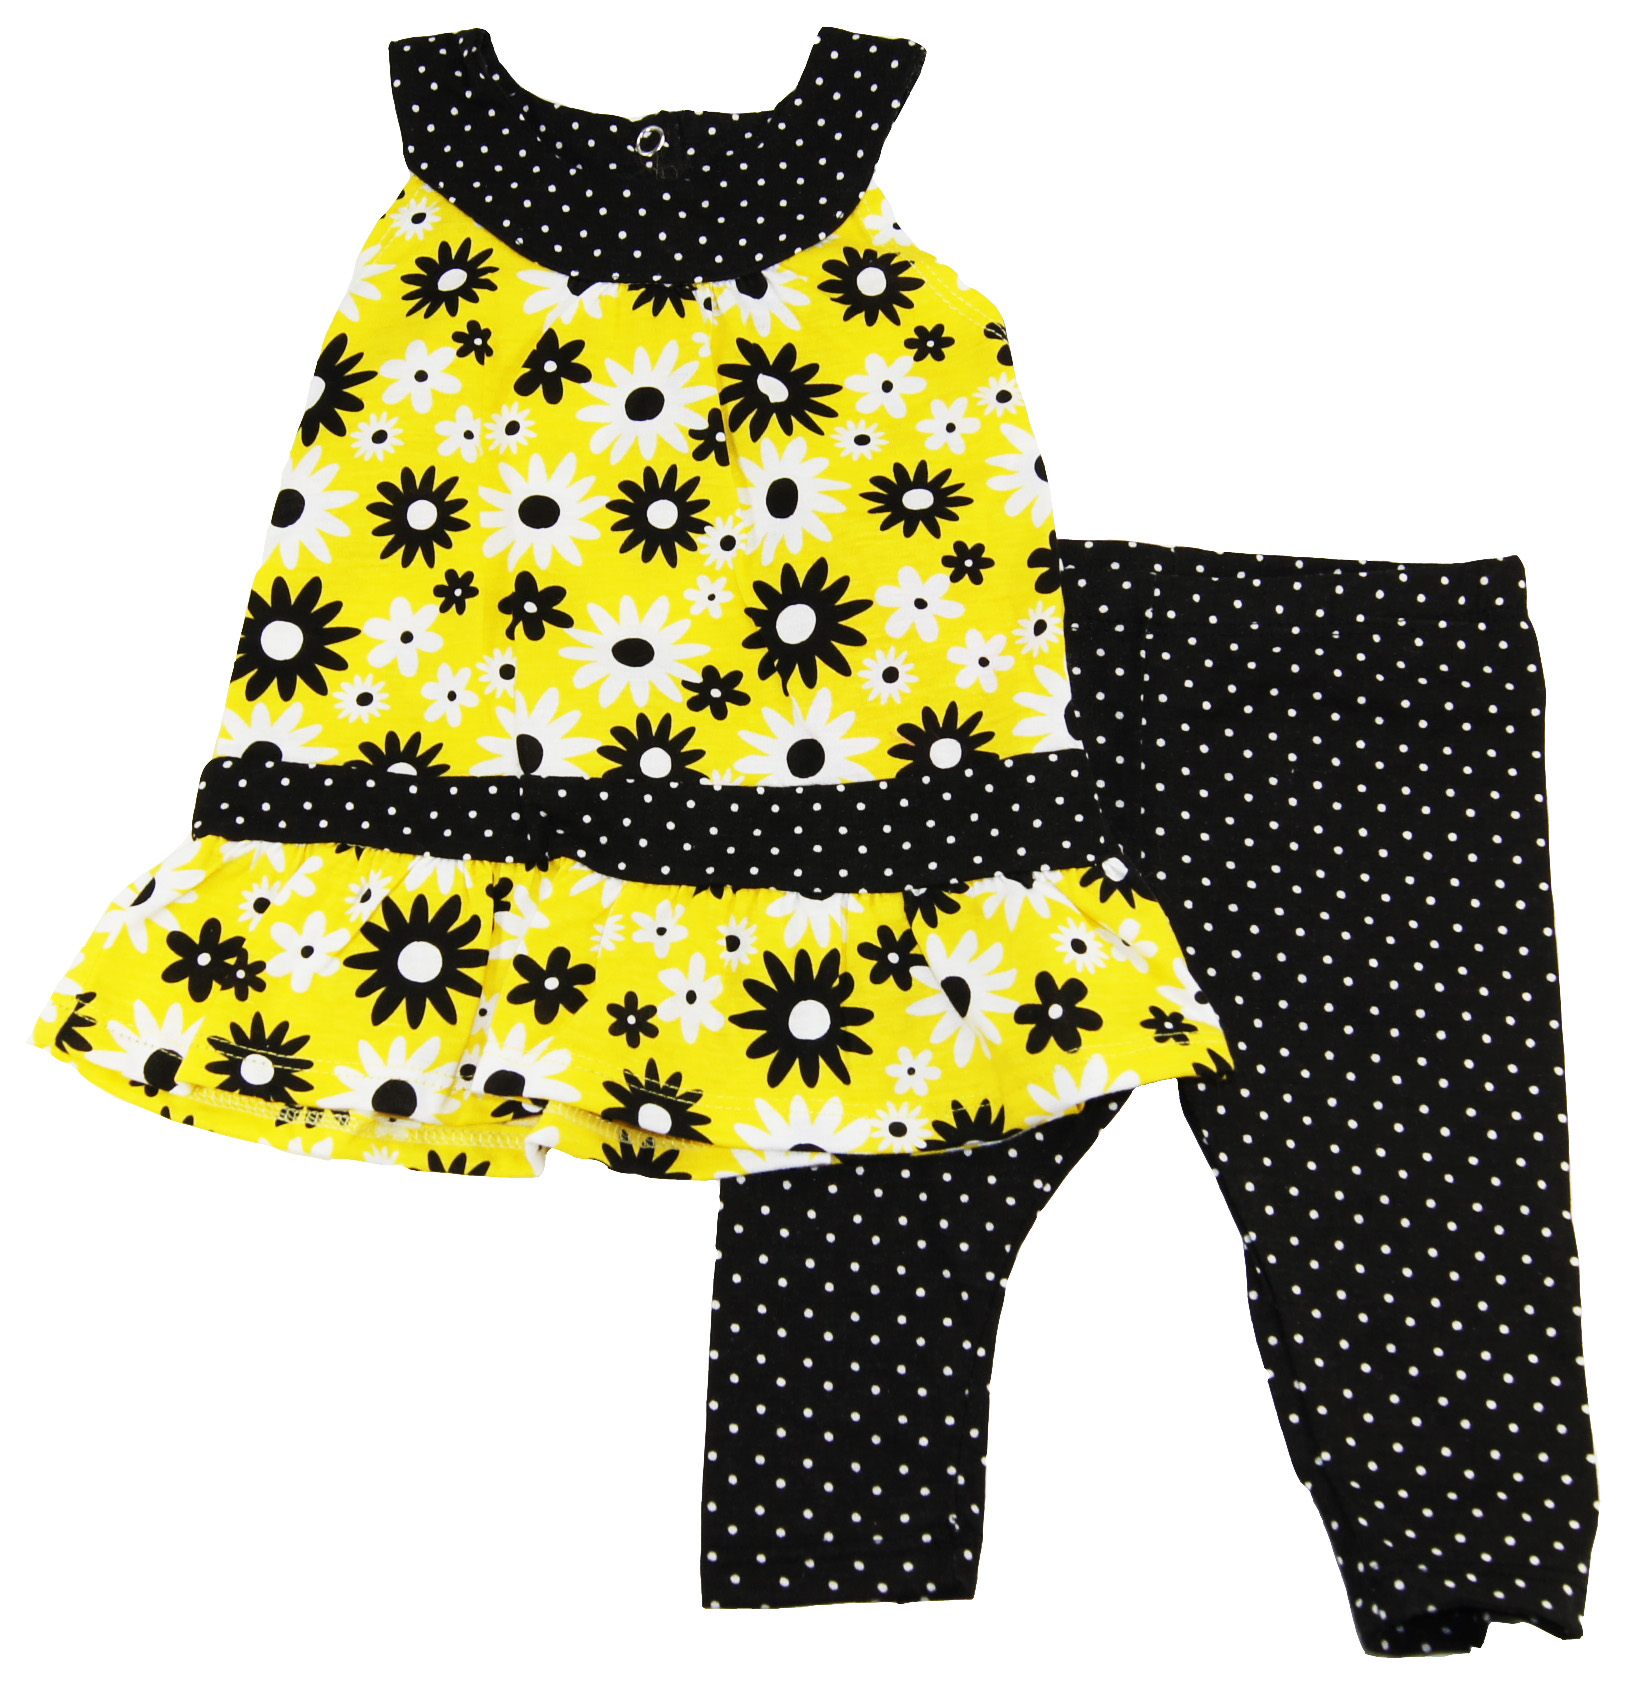 Buster Brown Baby-Girls 3-9M Yellow Flowers Tunic/Dress with Leggings 2Piece Set at Sears.com